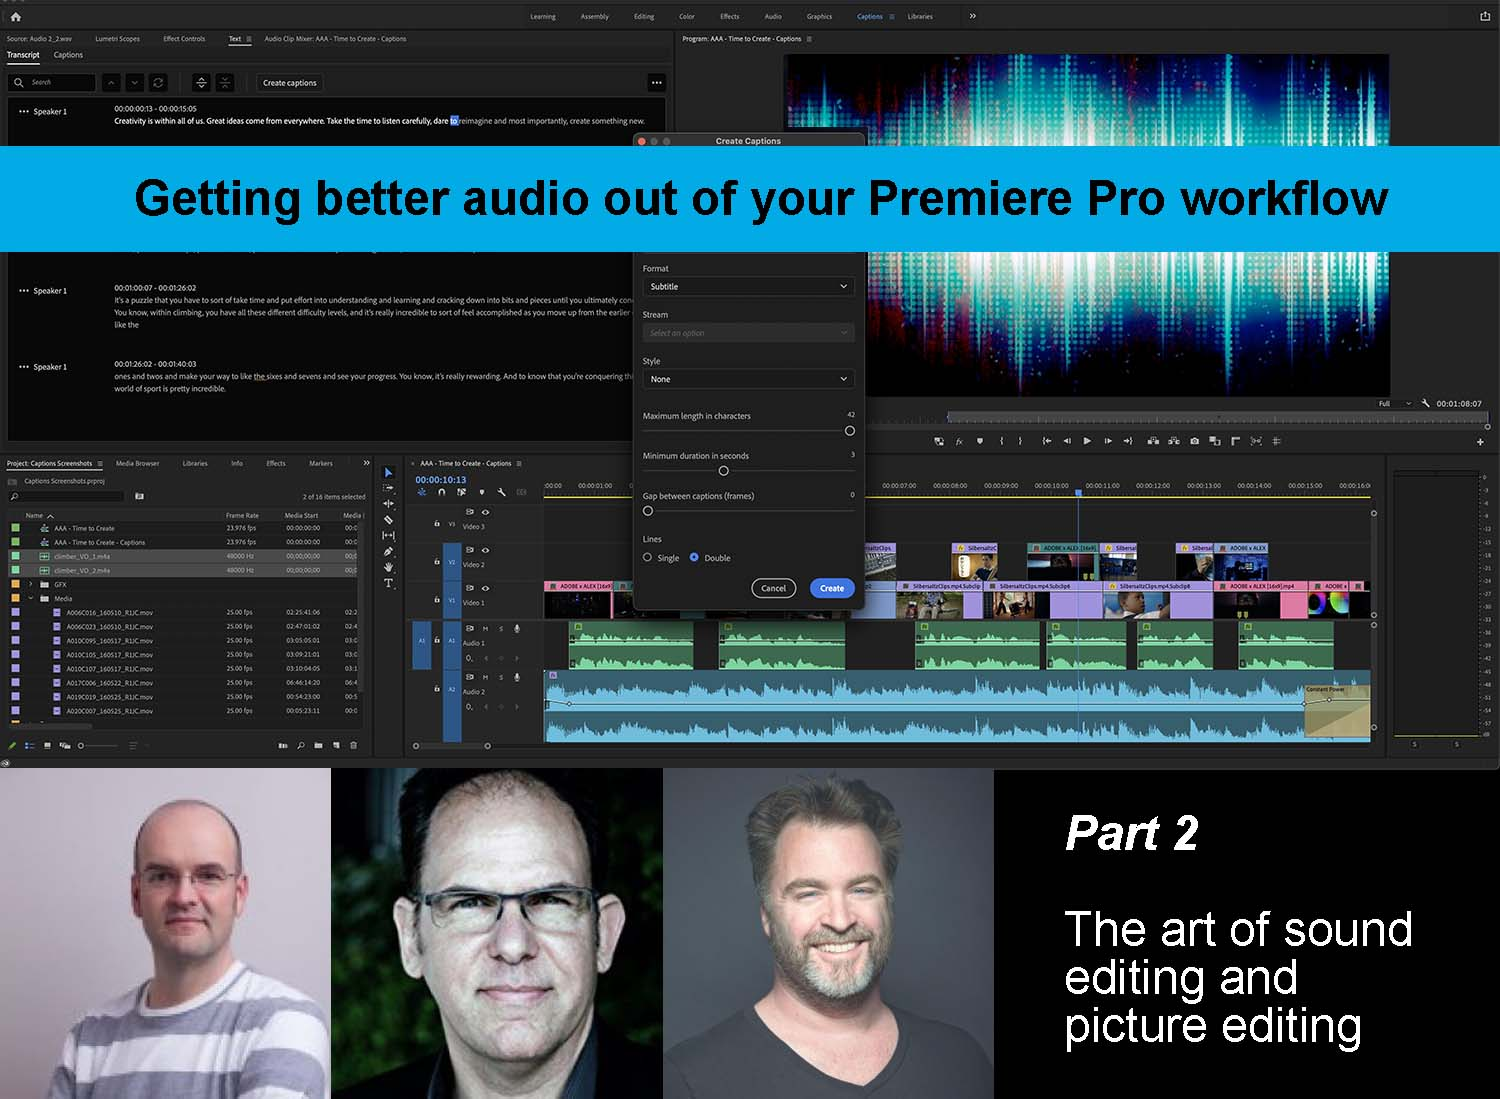 Exploring the tools that enable the art of sound editing and picture editing 4